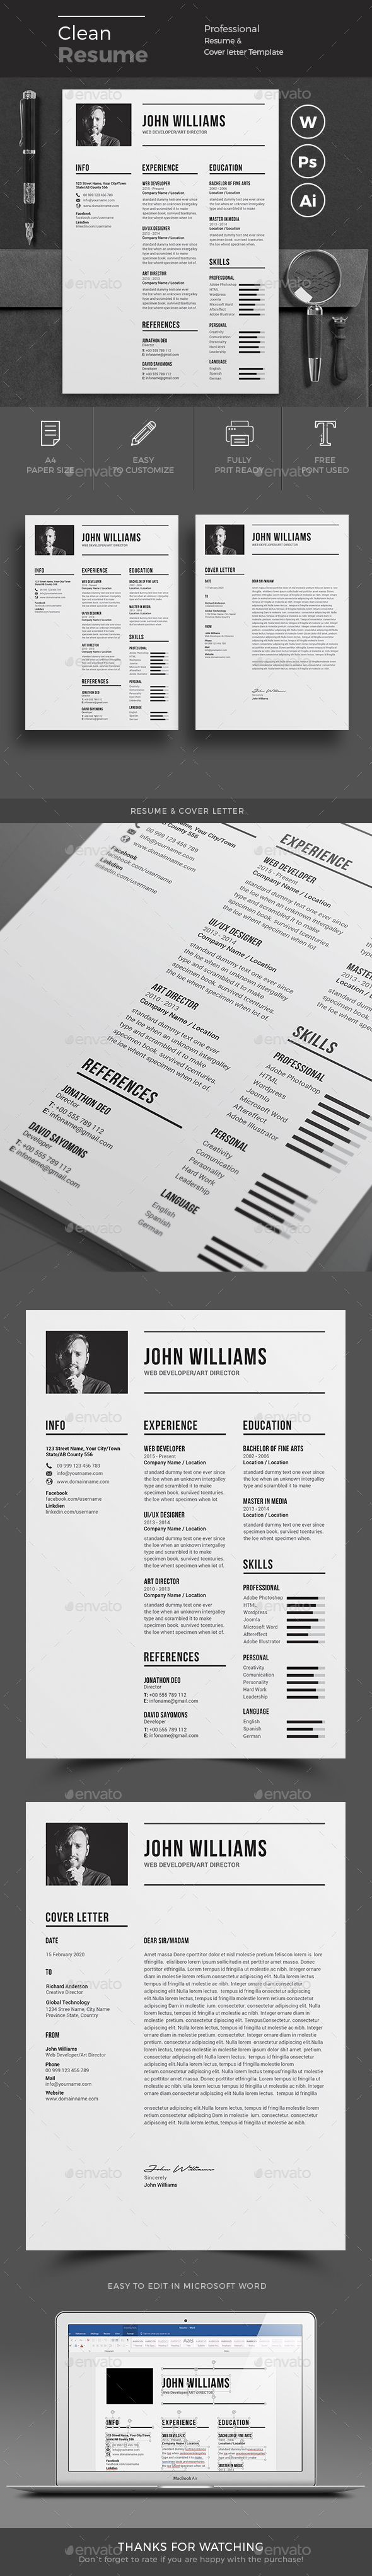 Resume Template Resume Builder CV